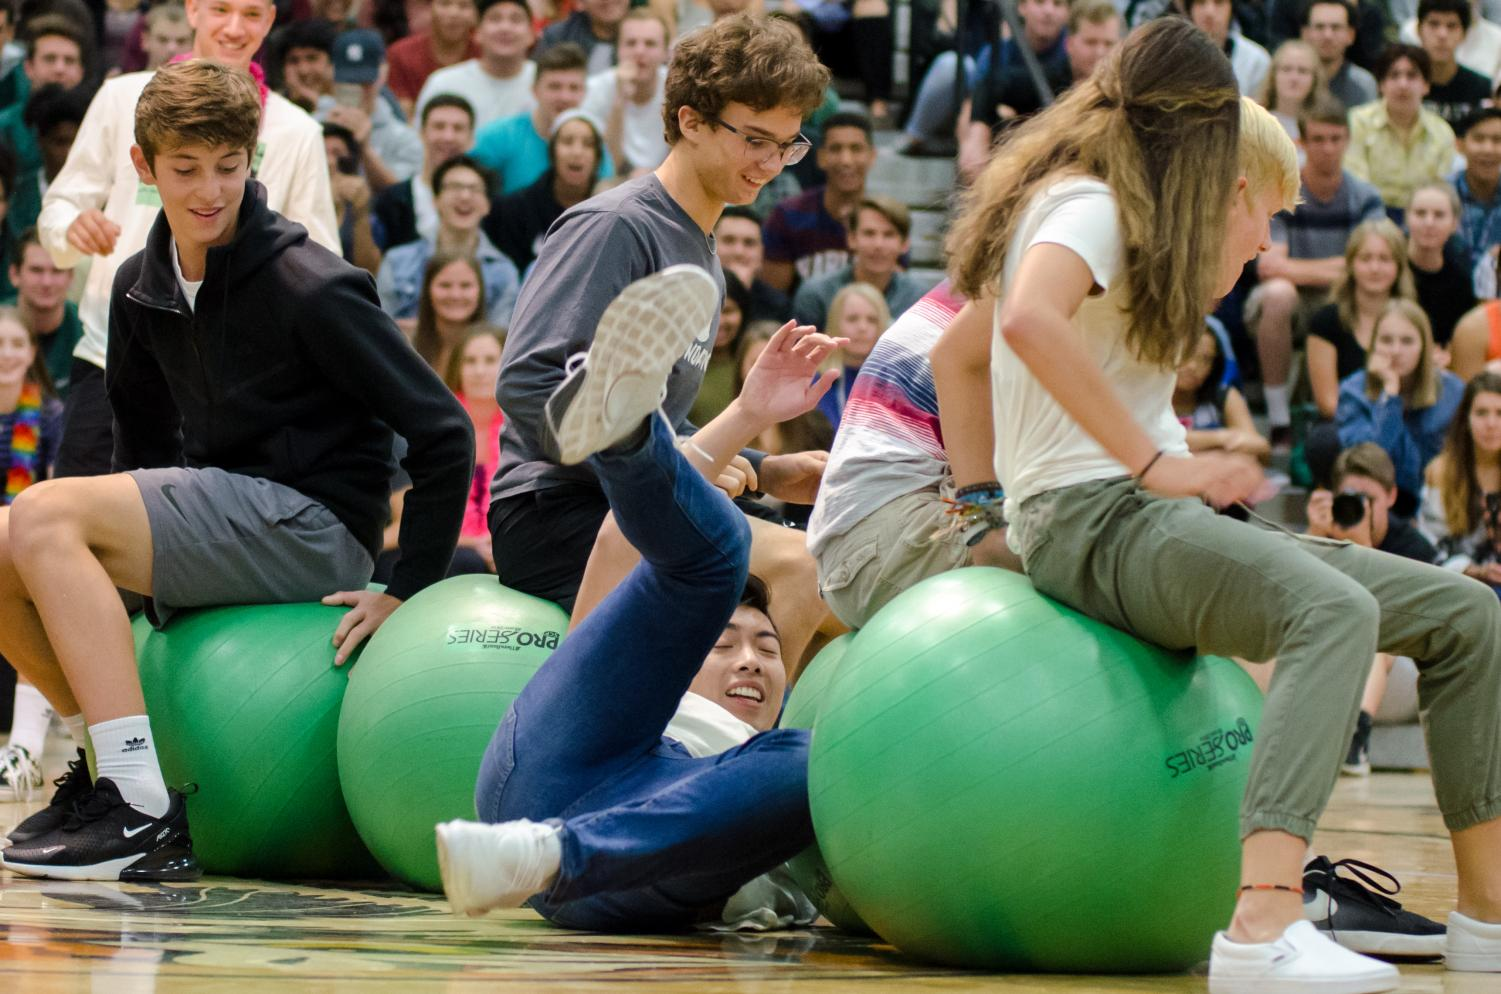 Students fight for the last seat in a 'musical chairs'-style game with exercise balls.